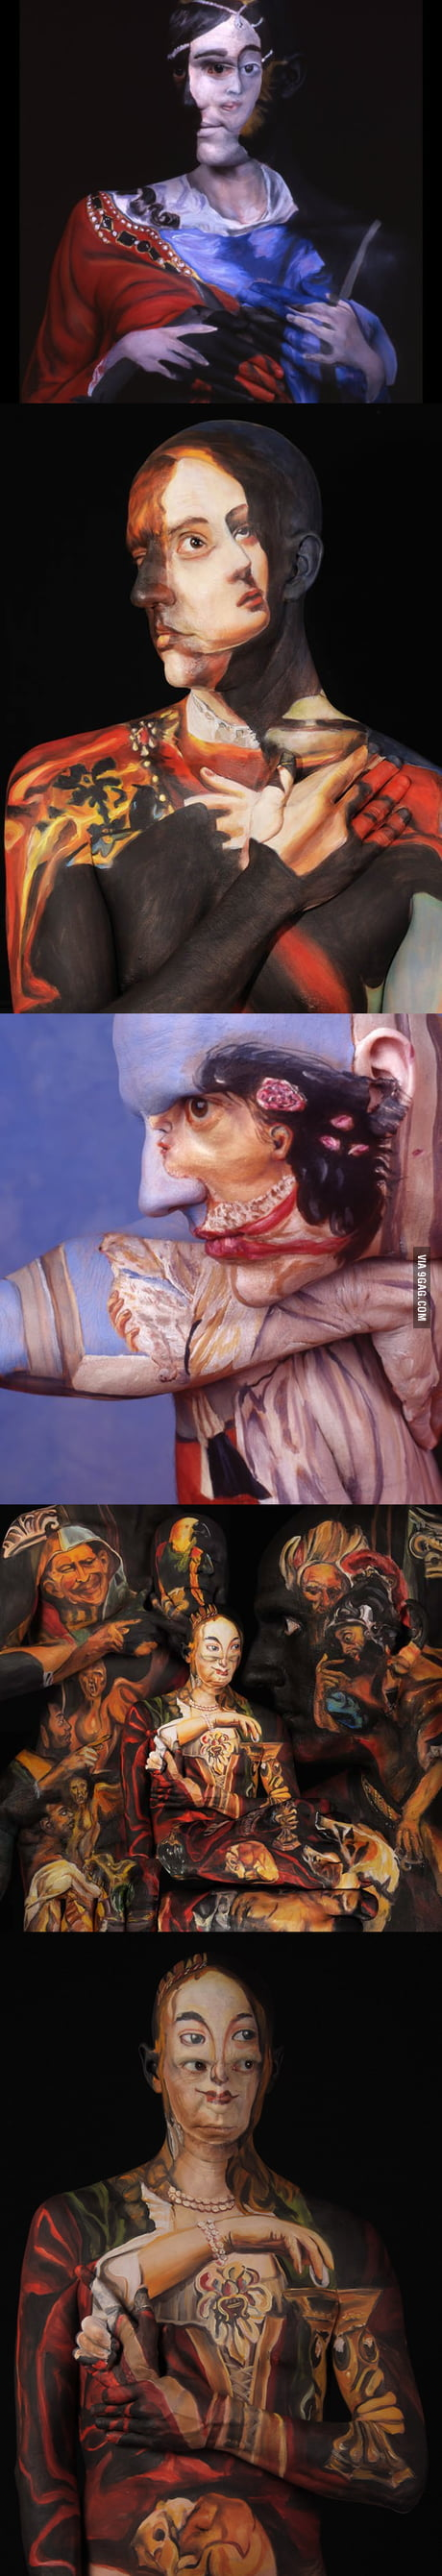 These Body Art Works Will Probably Hurt Your Brain 9gag